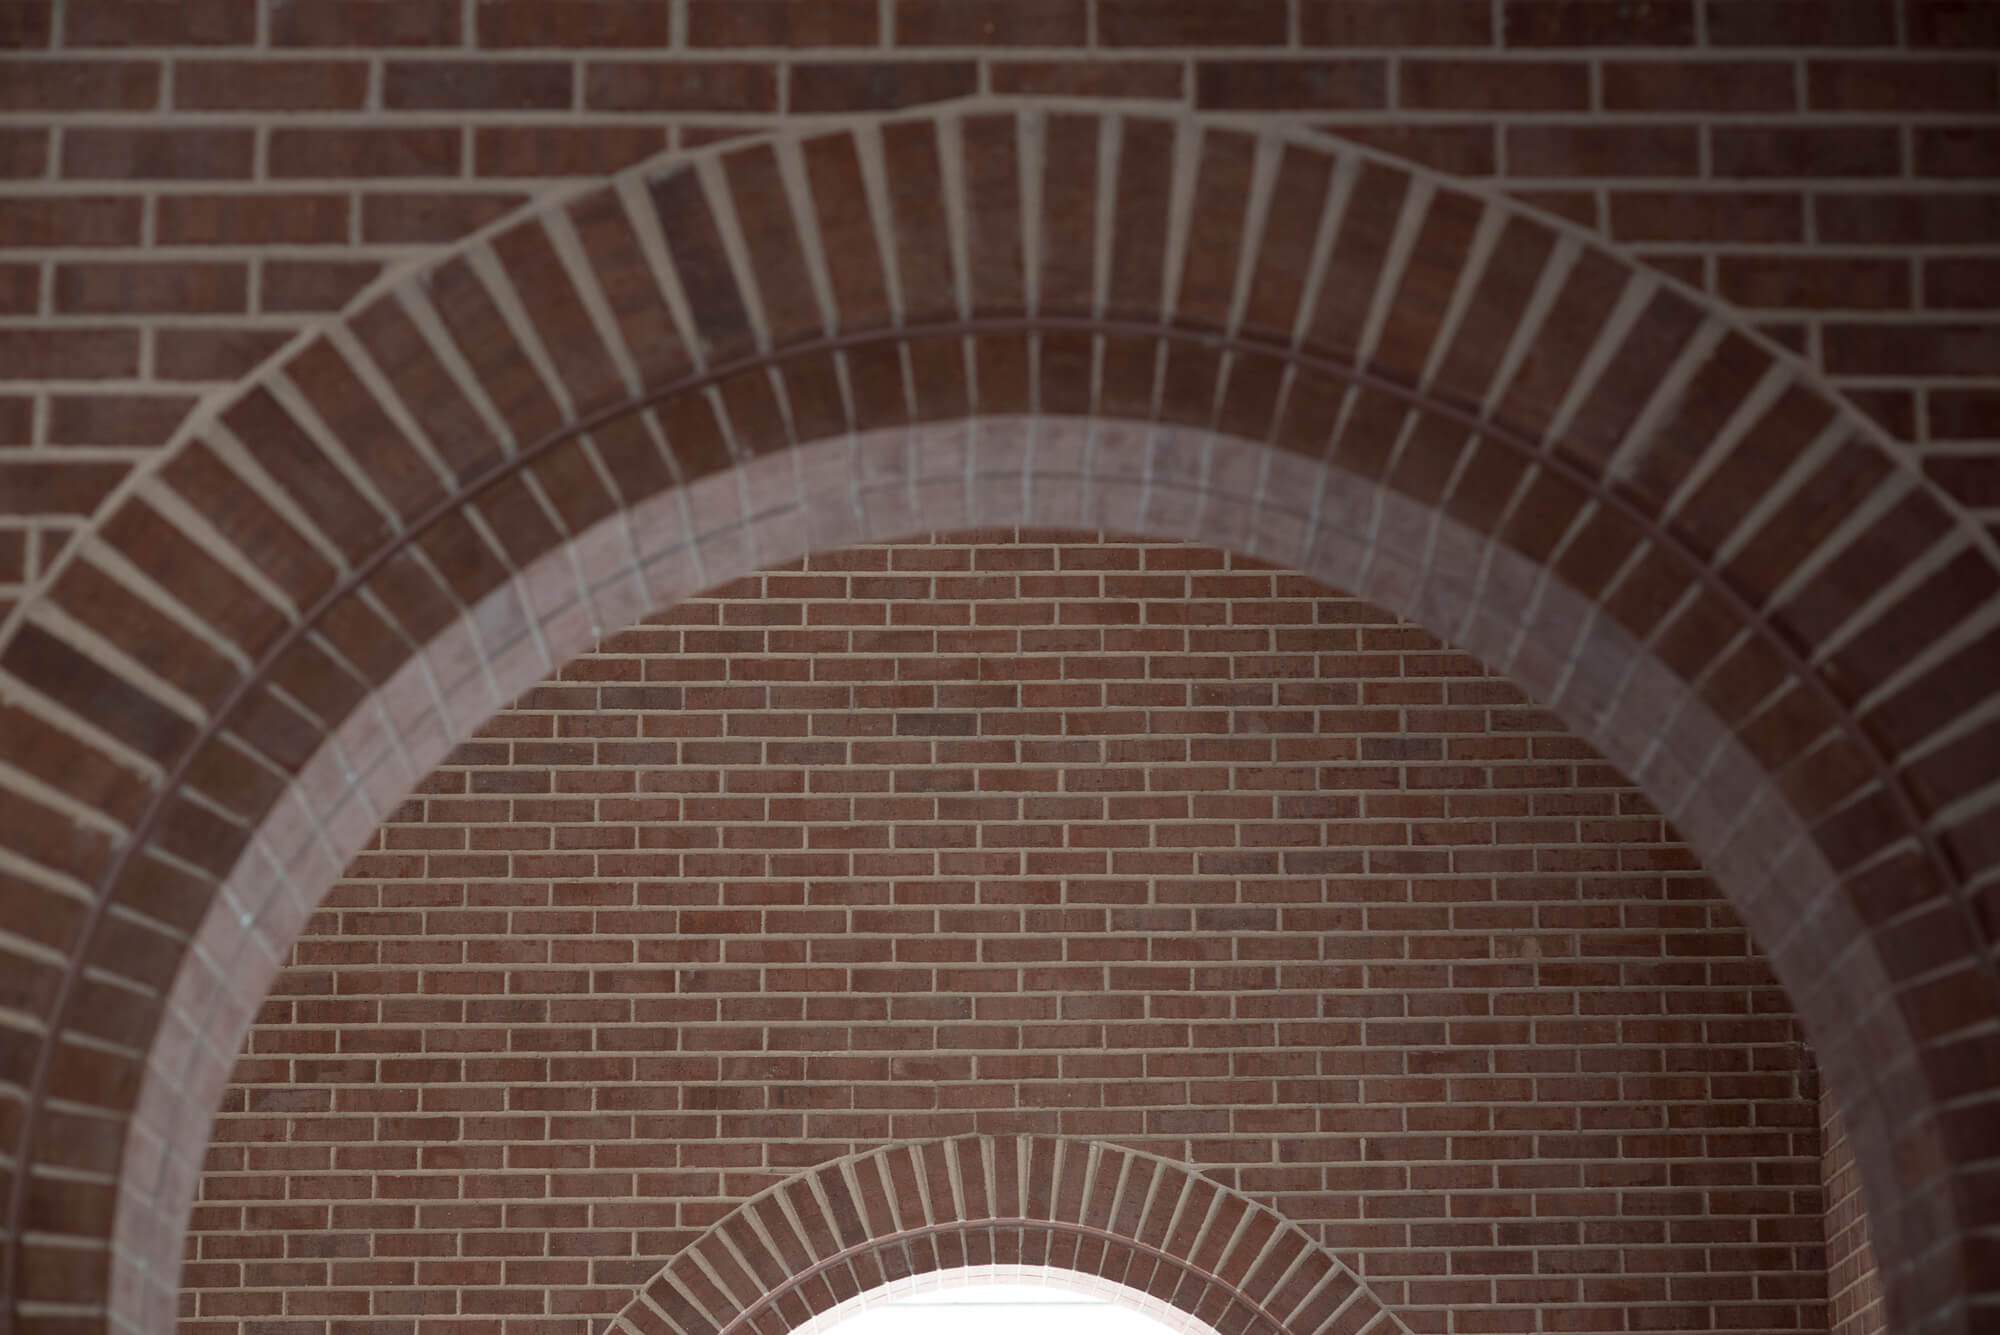 UAC arch with brick wall detail